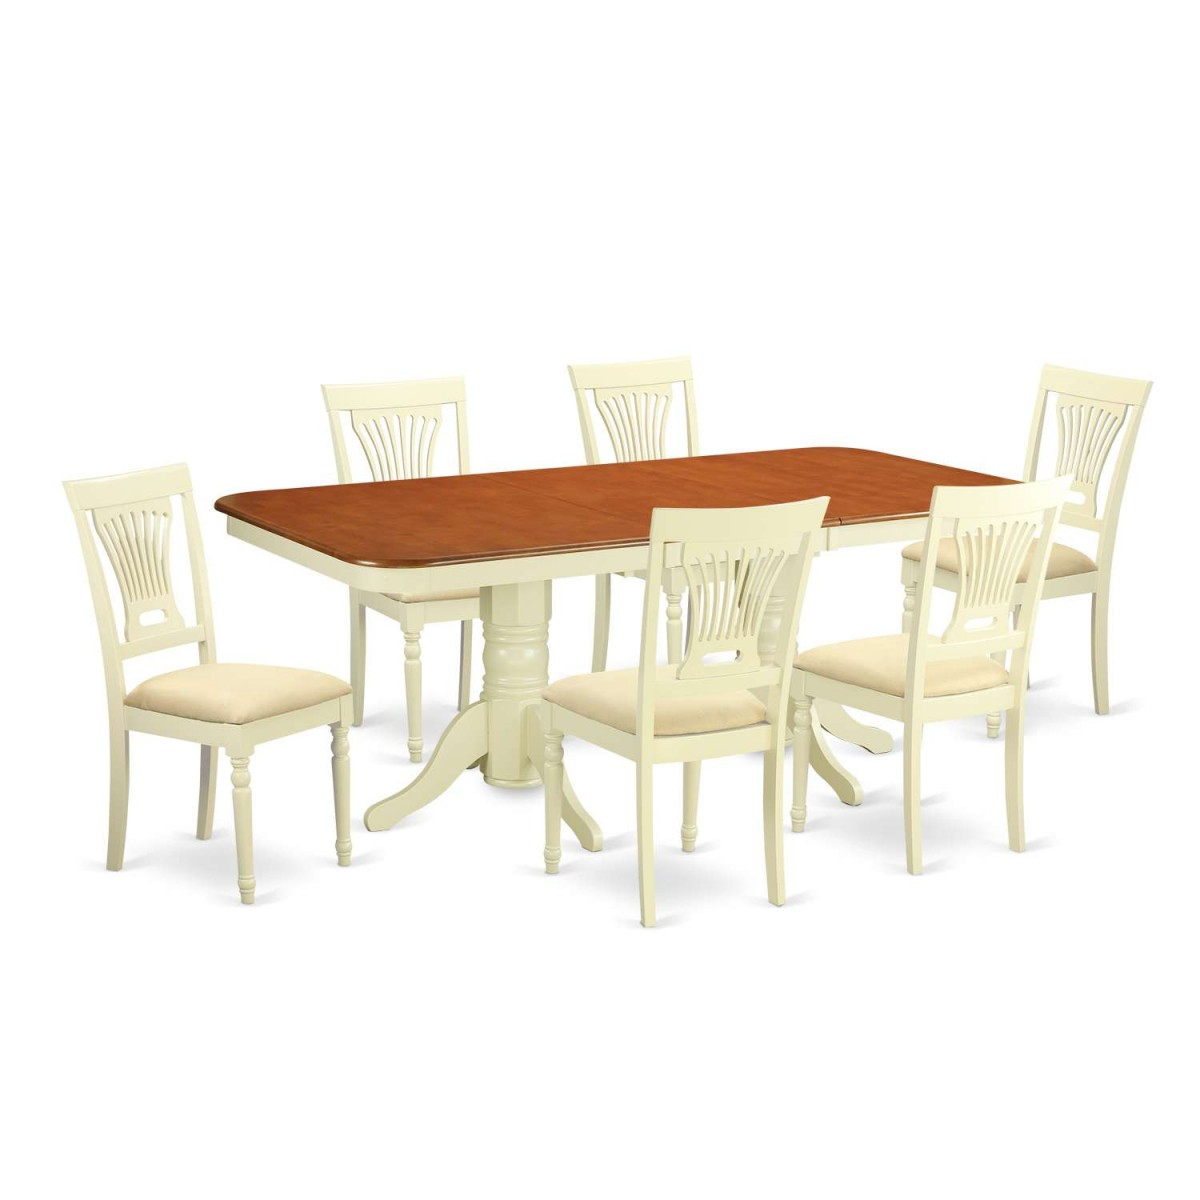 Formal Dining Table Set: East West Furniture Napoleon 7 Piece Formal Dining Table